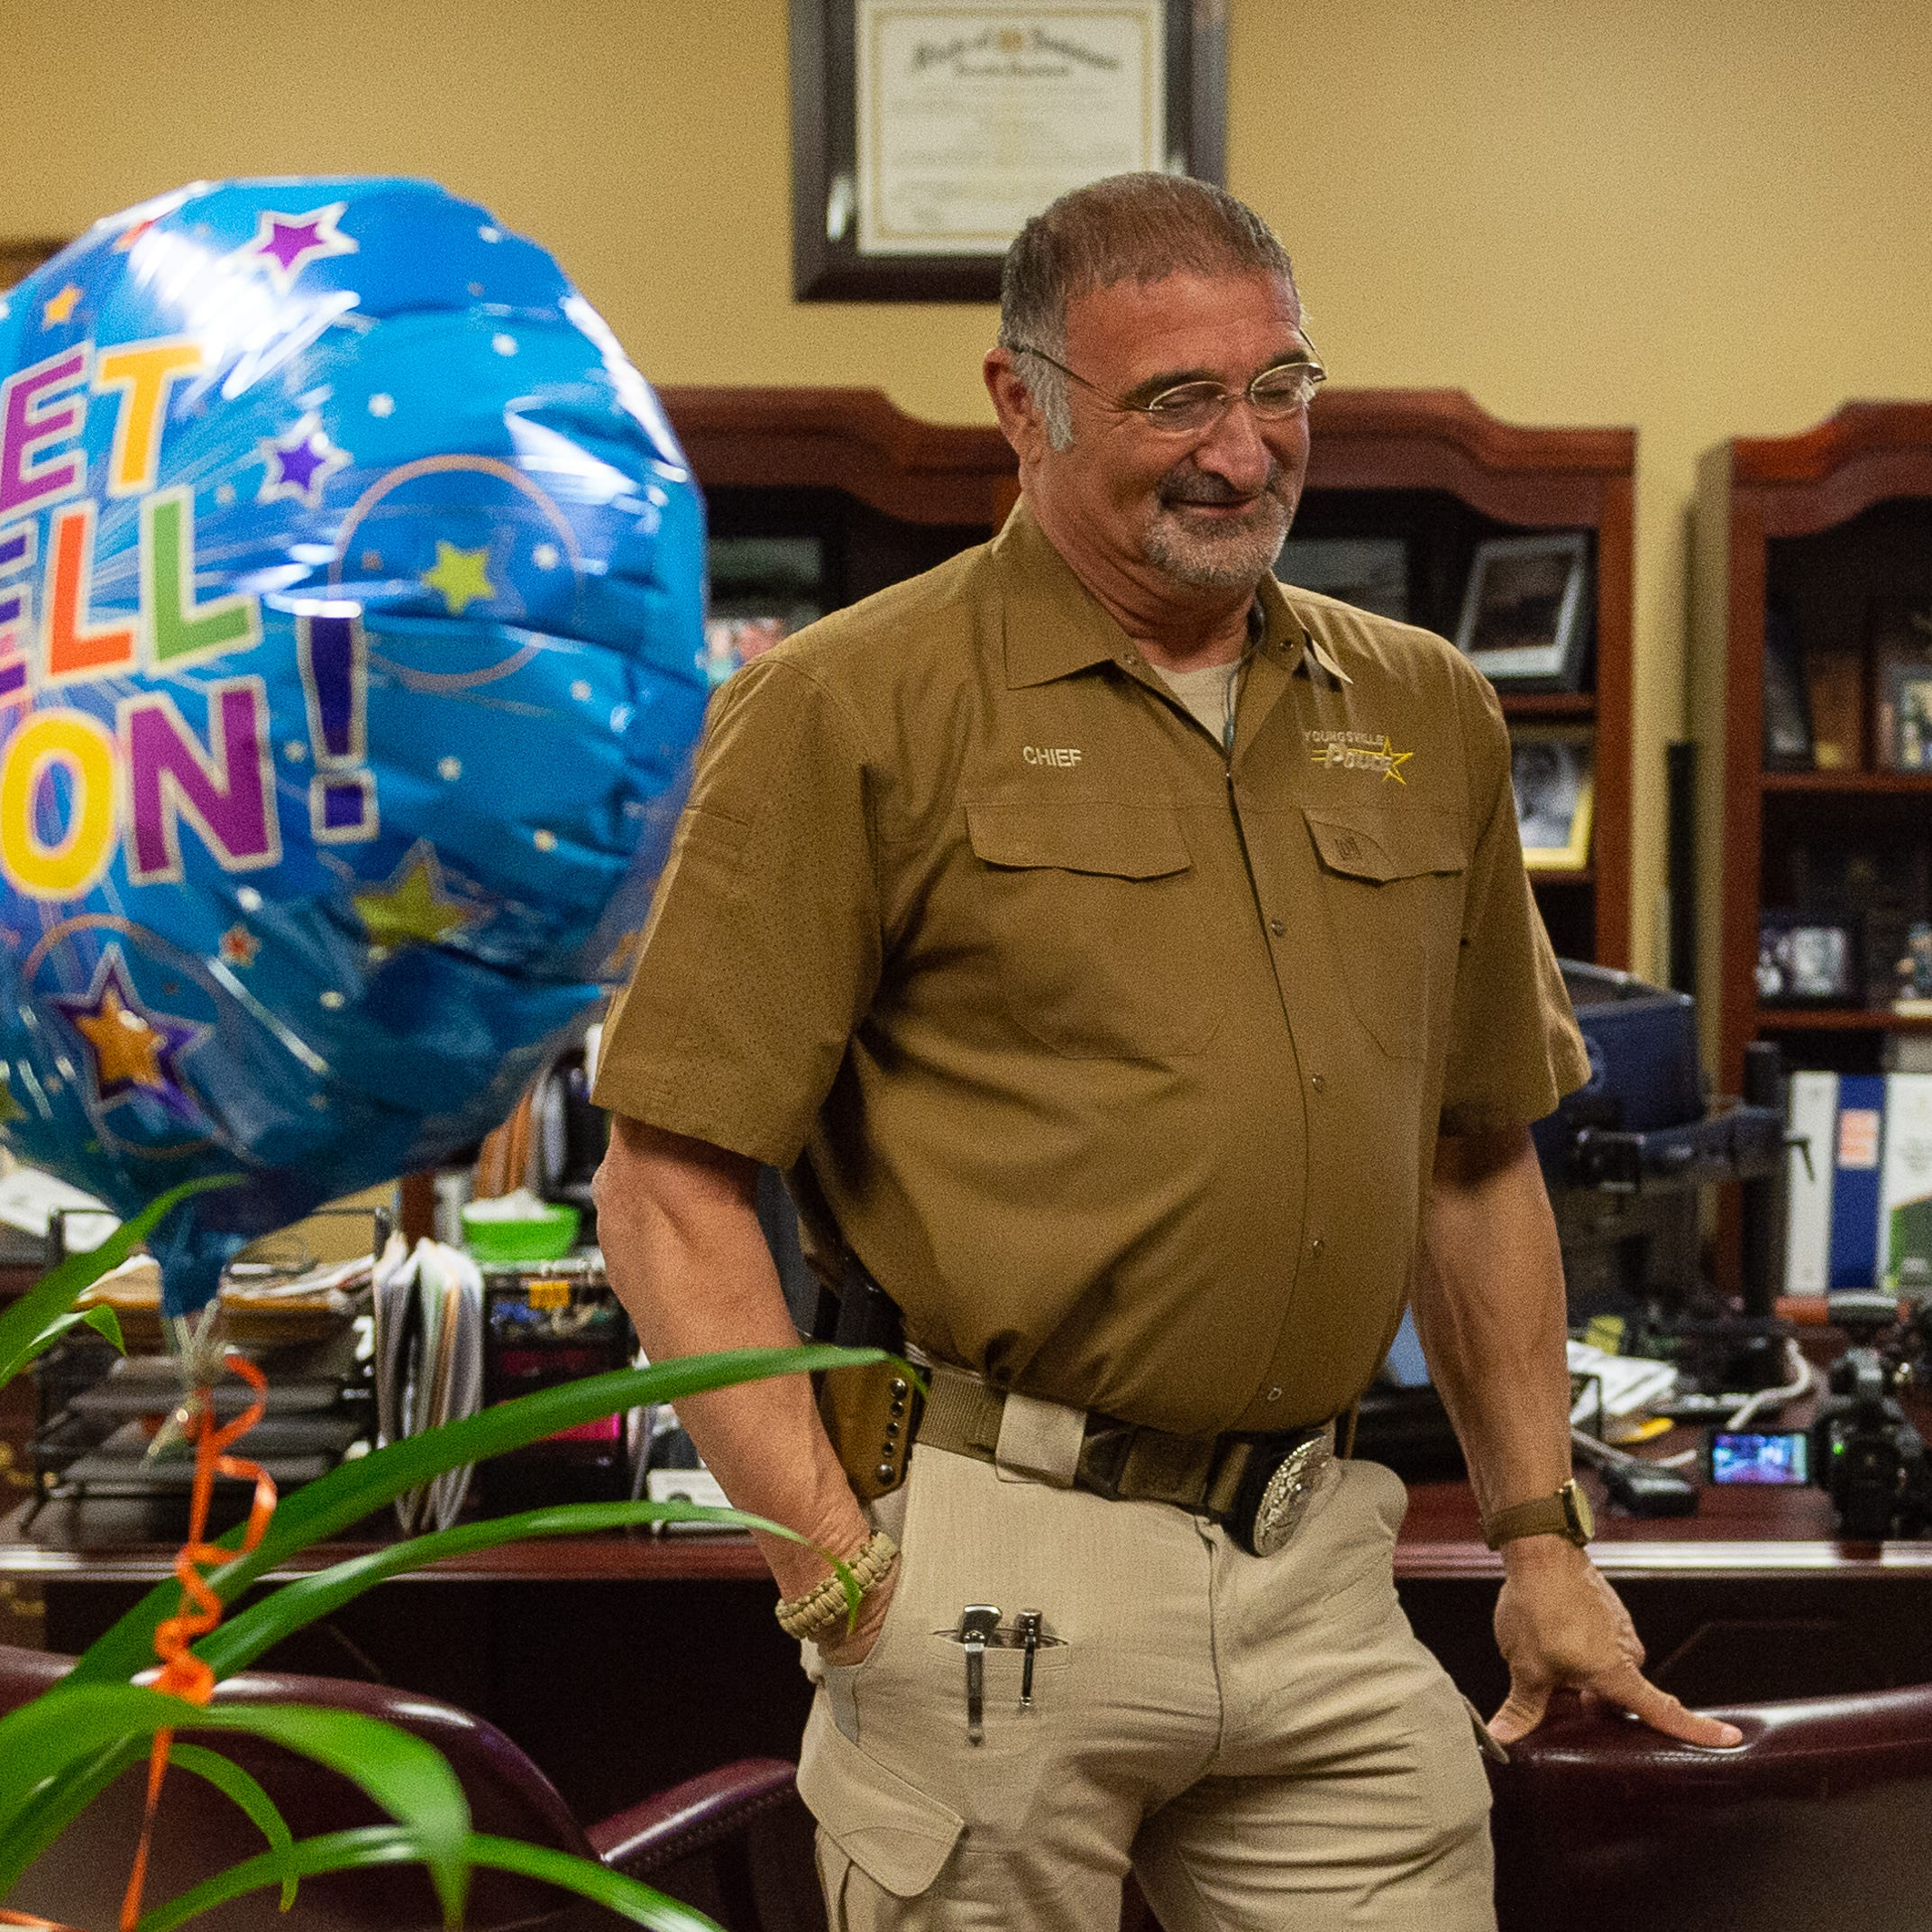 'I love this job': Youngsville police chief on the mend after motorcycle crash